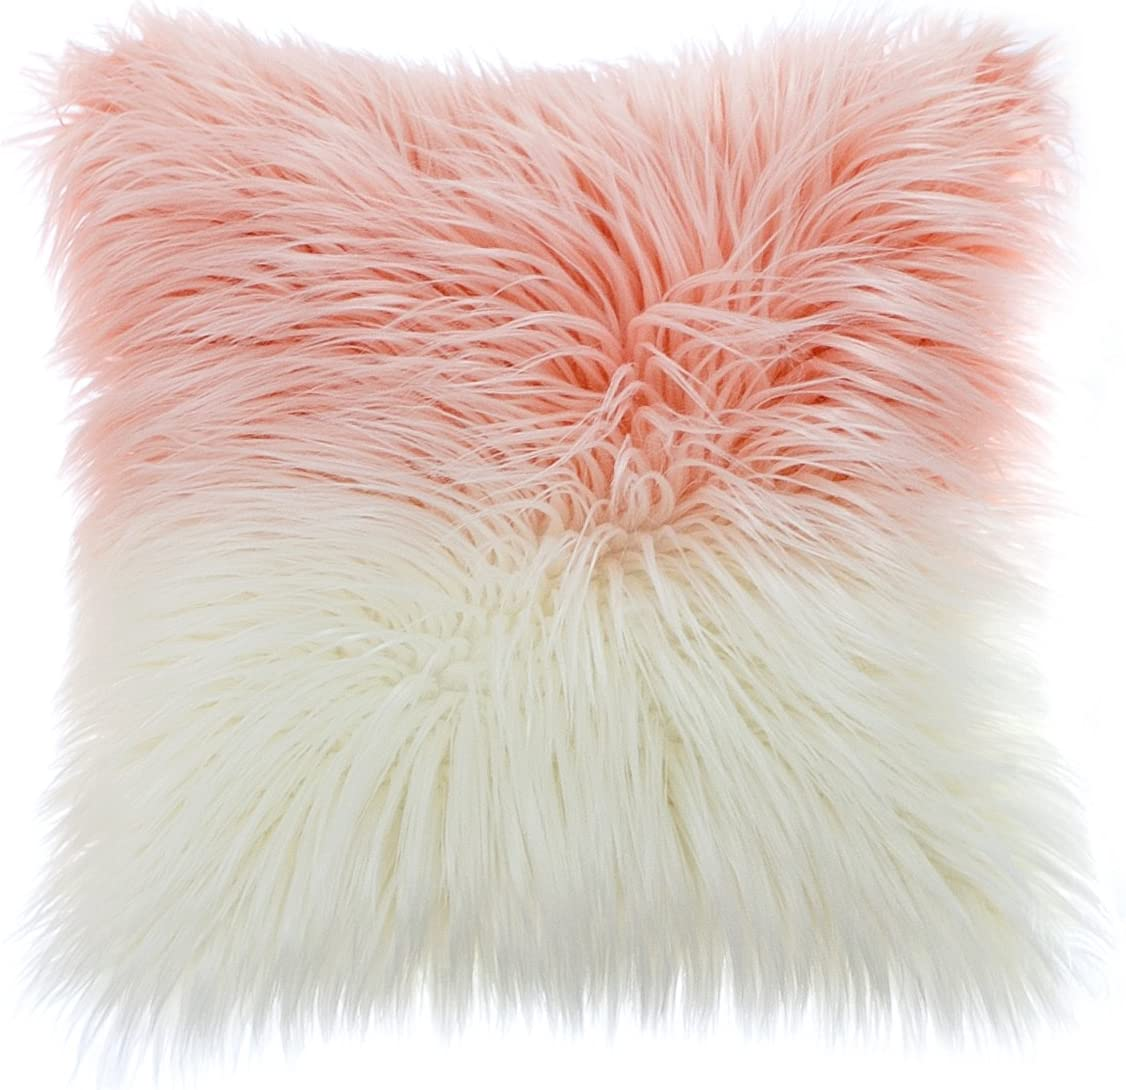 OJIA Deluxe Home Decorative Super Soft Plush Mongolian Faux Fur Throw Pillow Cover Cushion Case (18 x 18 Inch, White Pink)